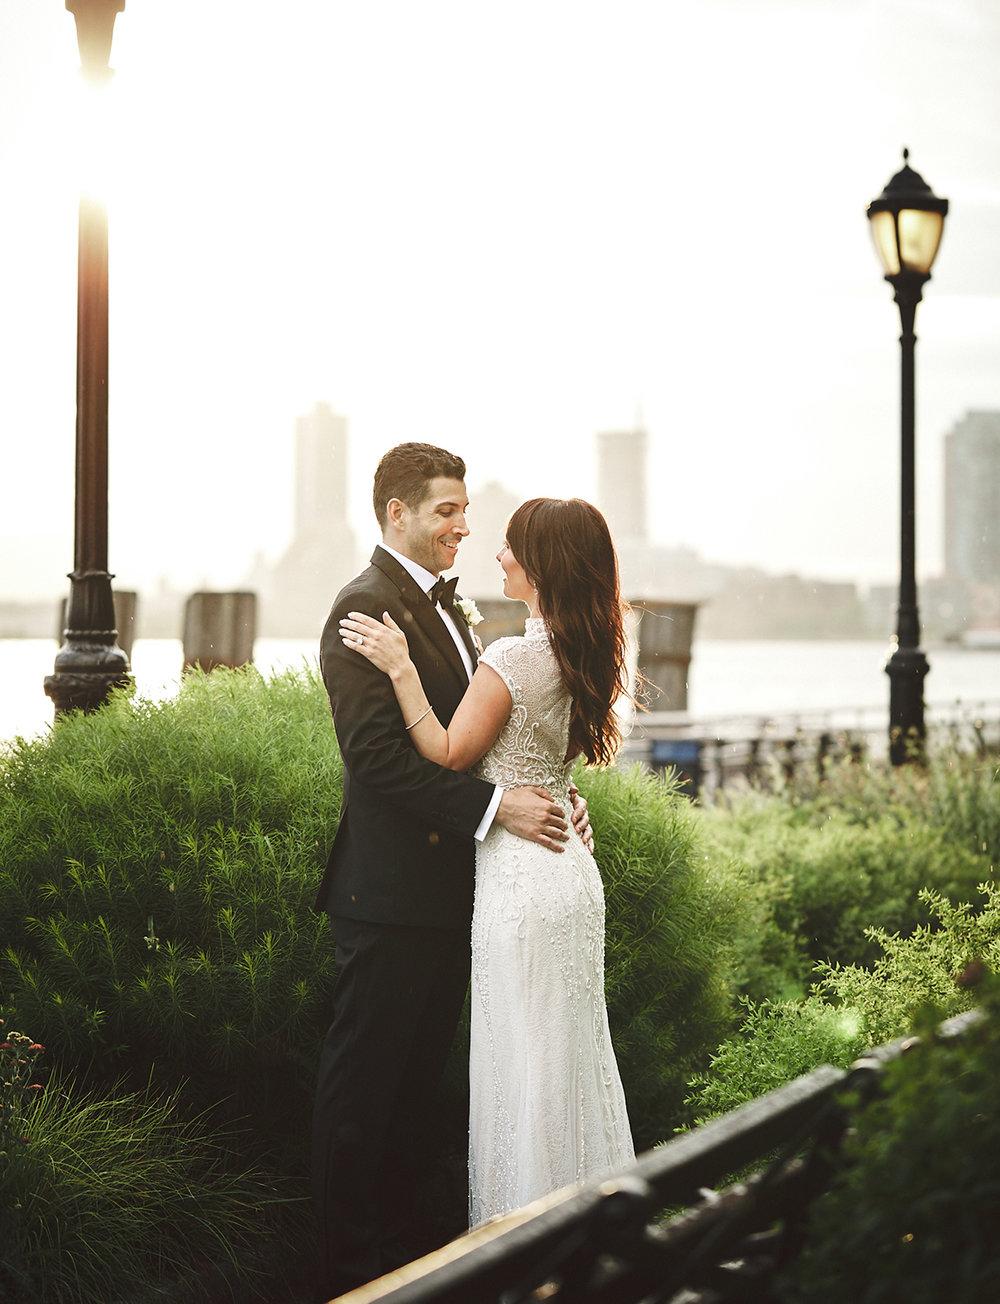 180622_BatteryGardensWeddingPhotography_NYCWeddingPhotographer_BriJohnsonWeddings_0099.jpg